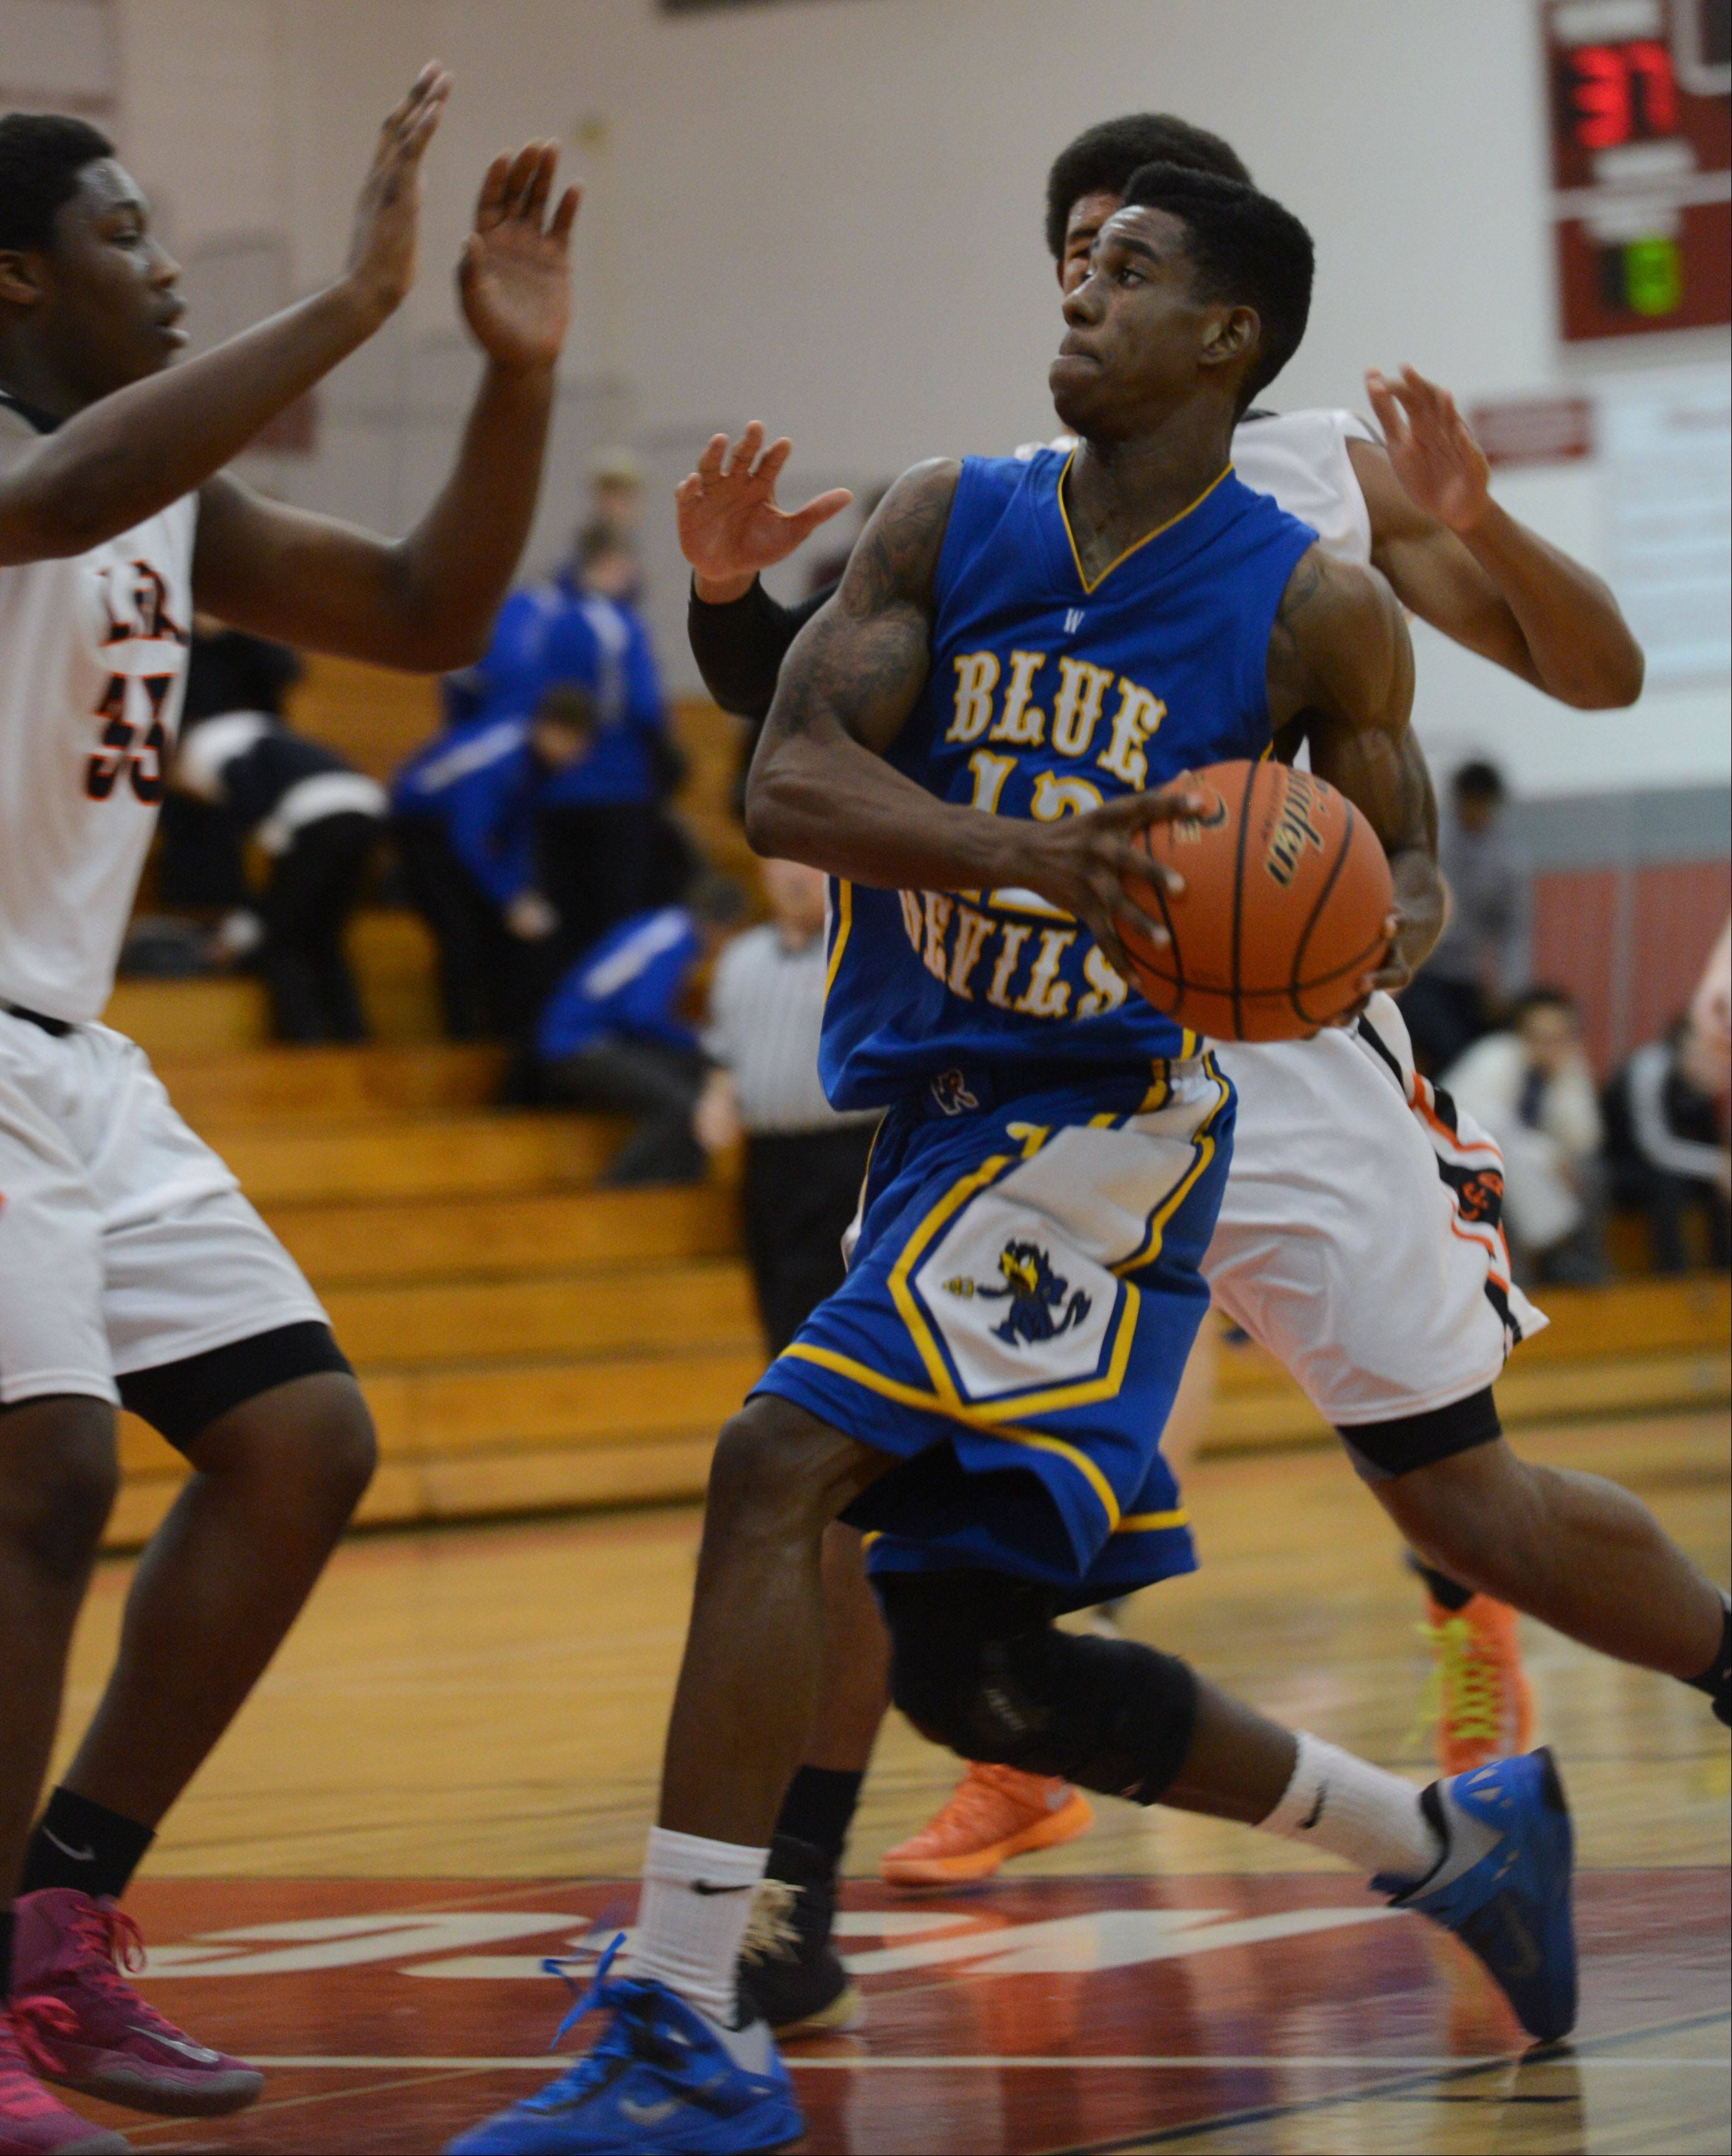 Warren's Greg Swain drives to the hoop against Lake Forest Academy defenders Wednesday in Mundelein.